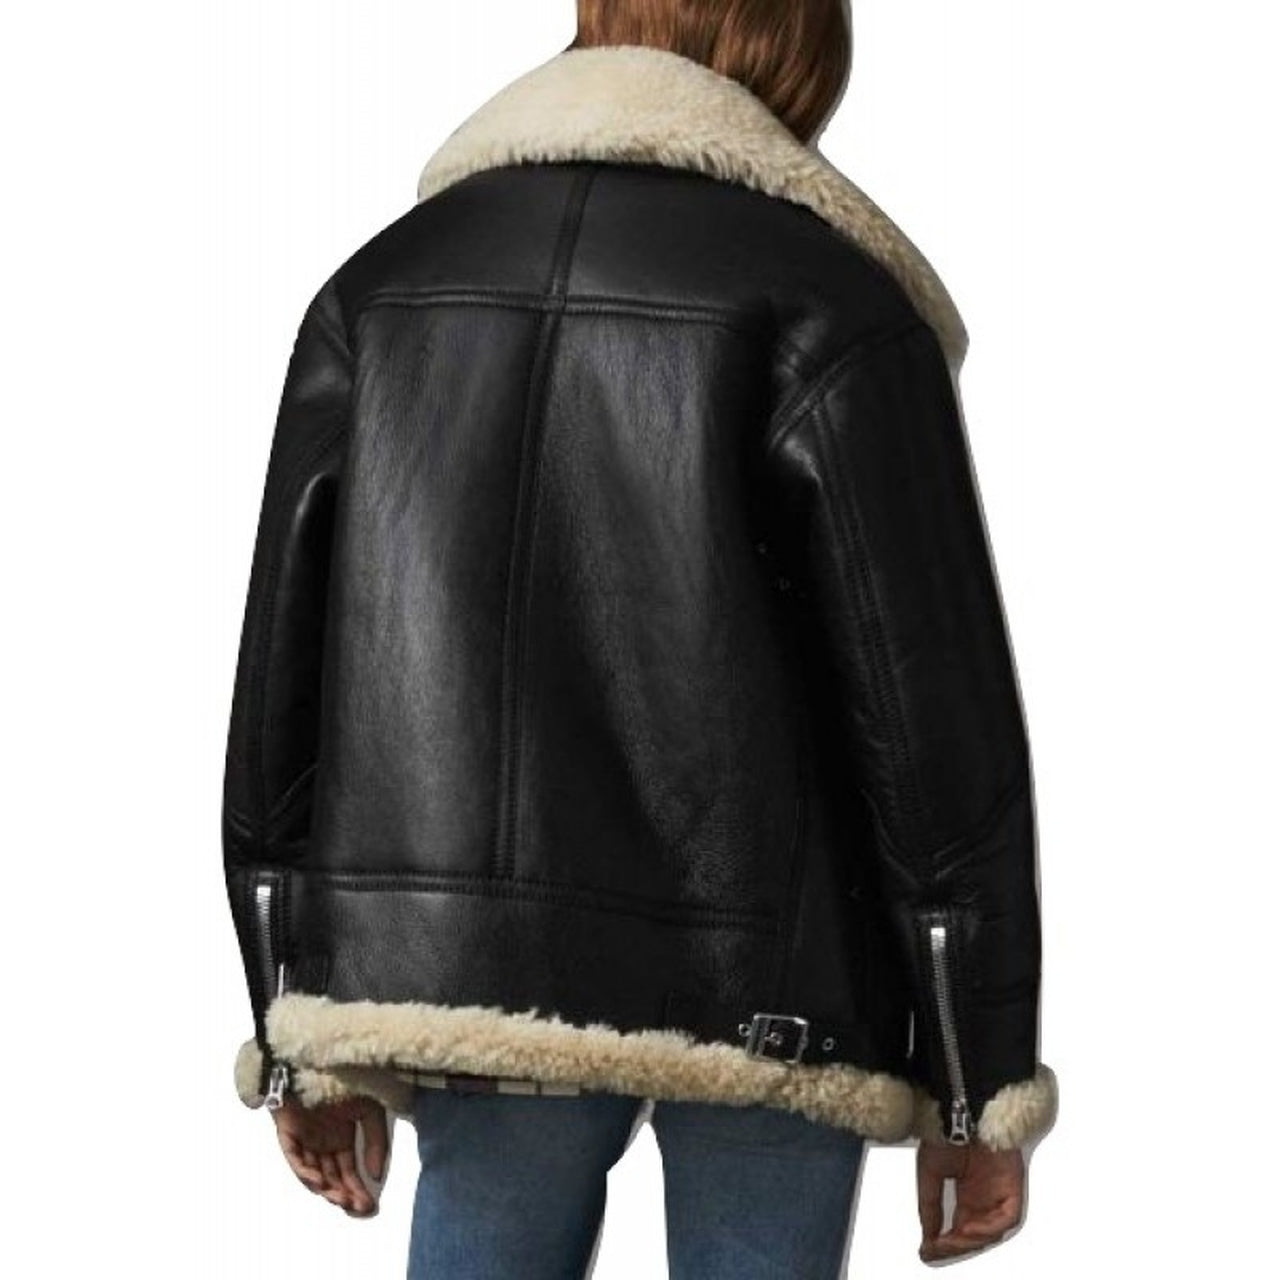 Stylish Black FUR Sheepskin Leather Jacket for Women - Leather Jacket